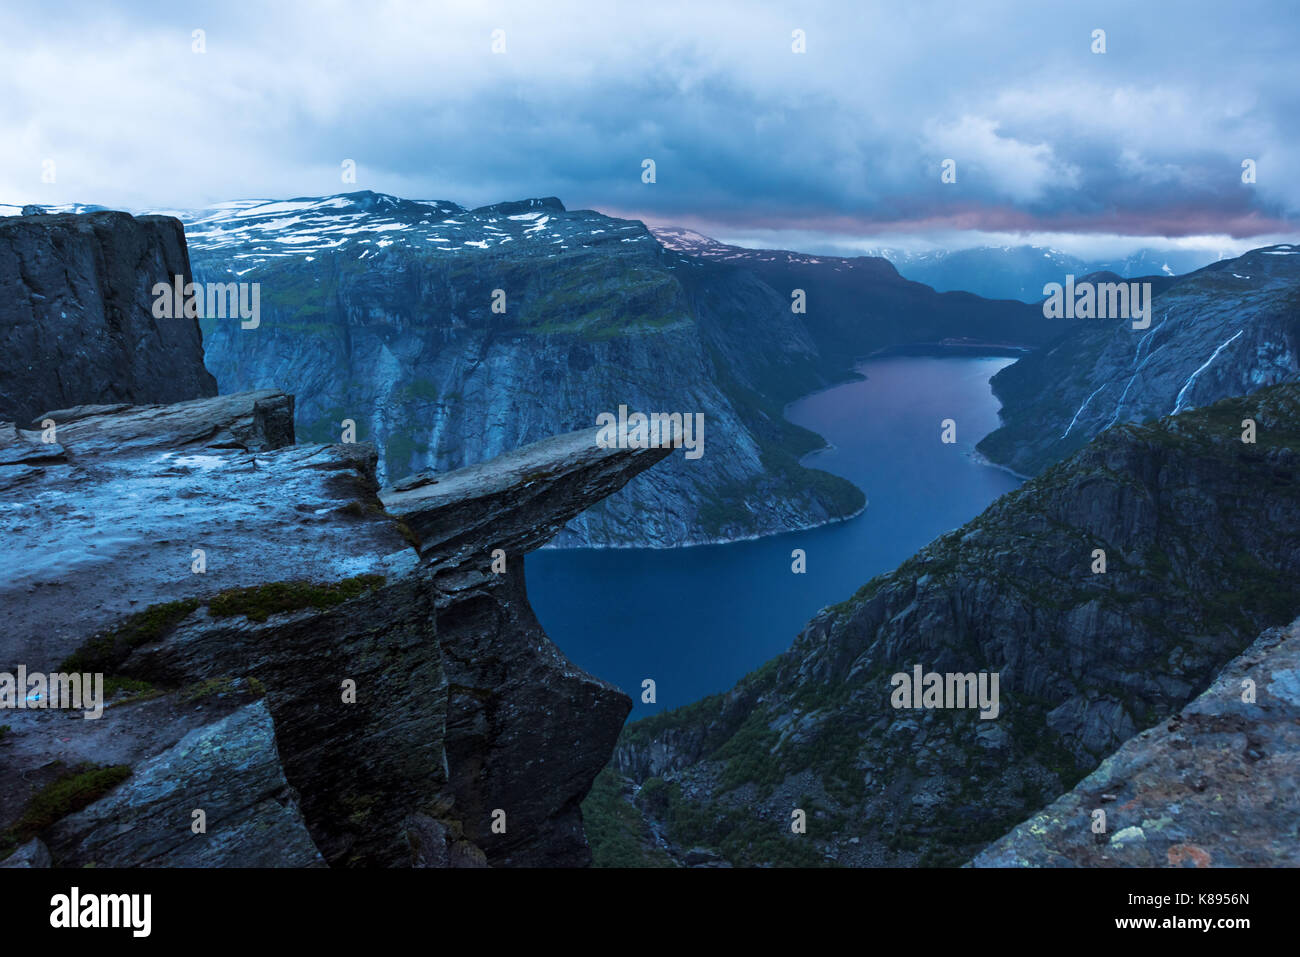 Breathtaking view of Trolltunga rock - most spectacular and famous scenic cliff in Norway - Stock Image